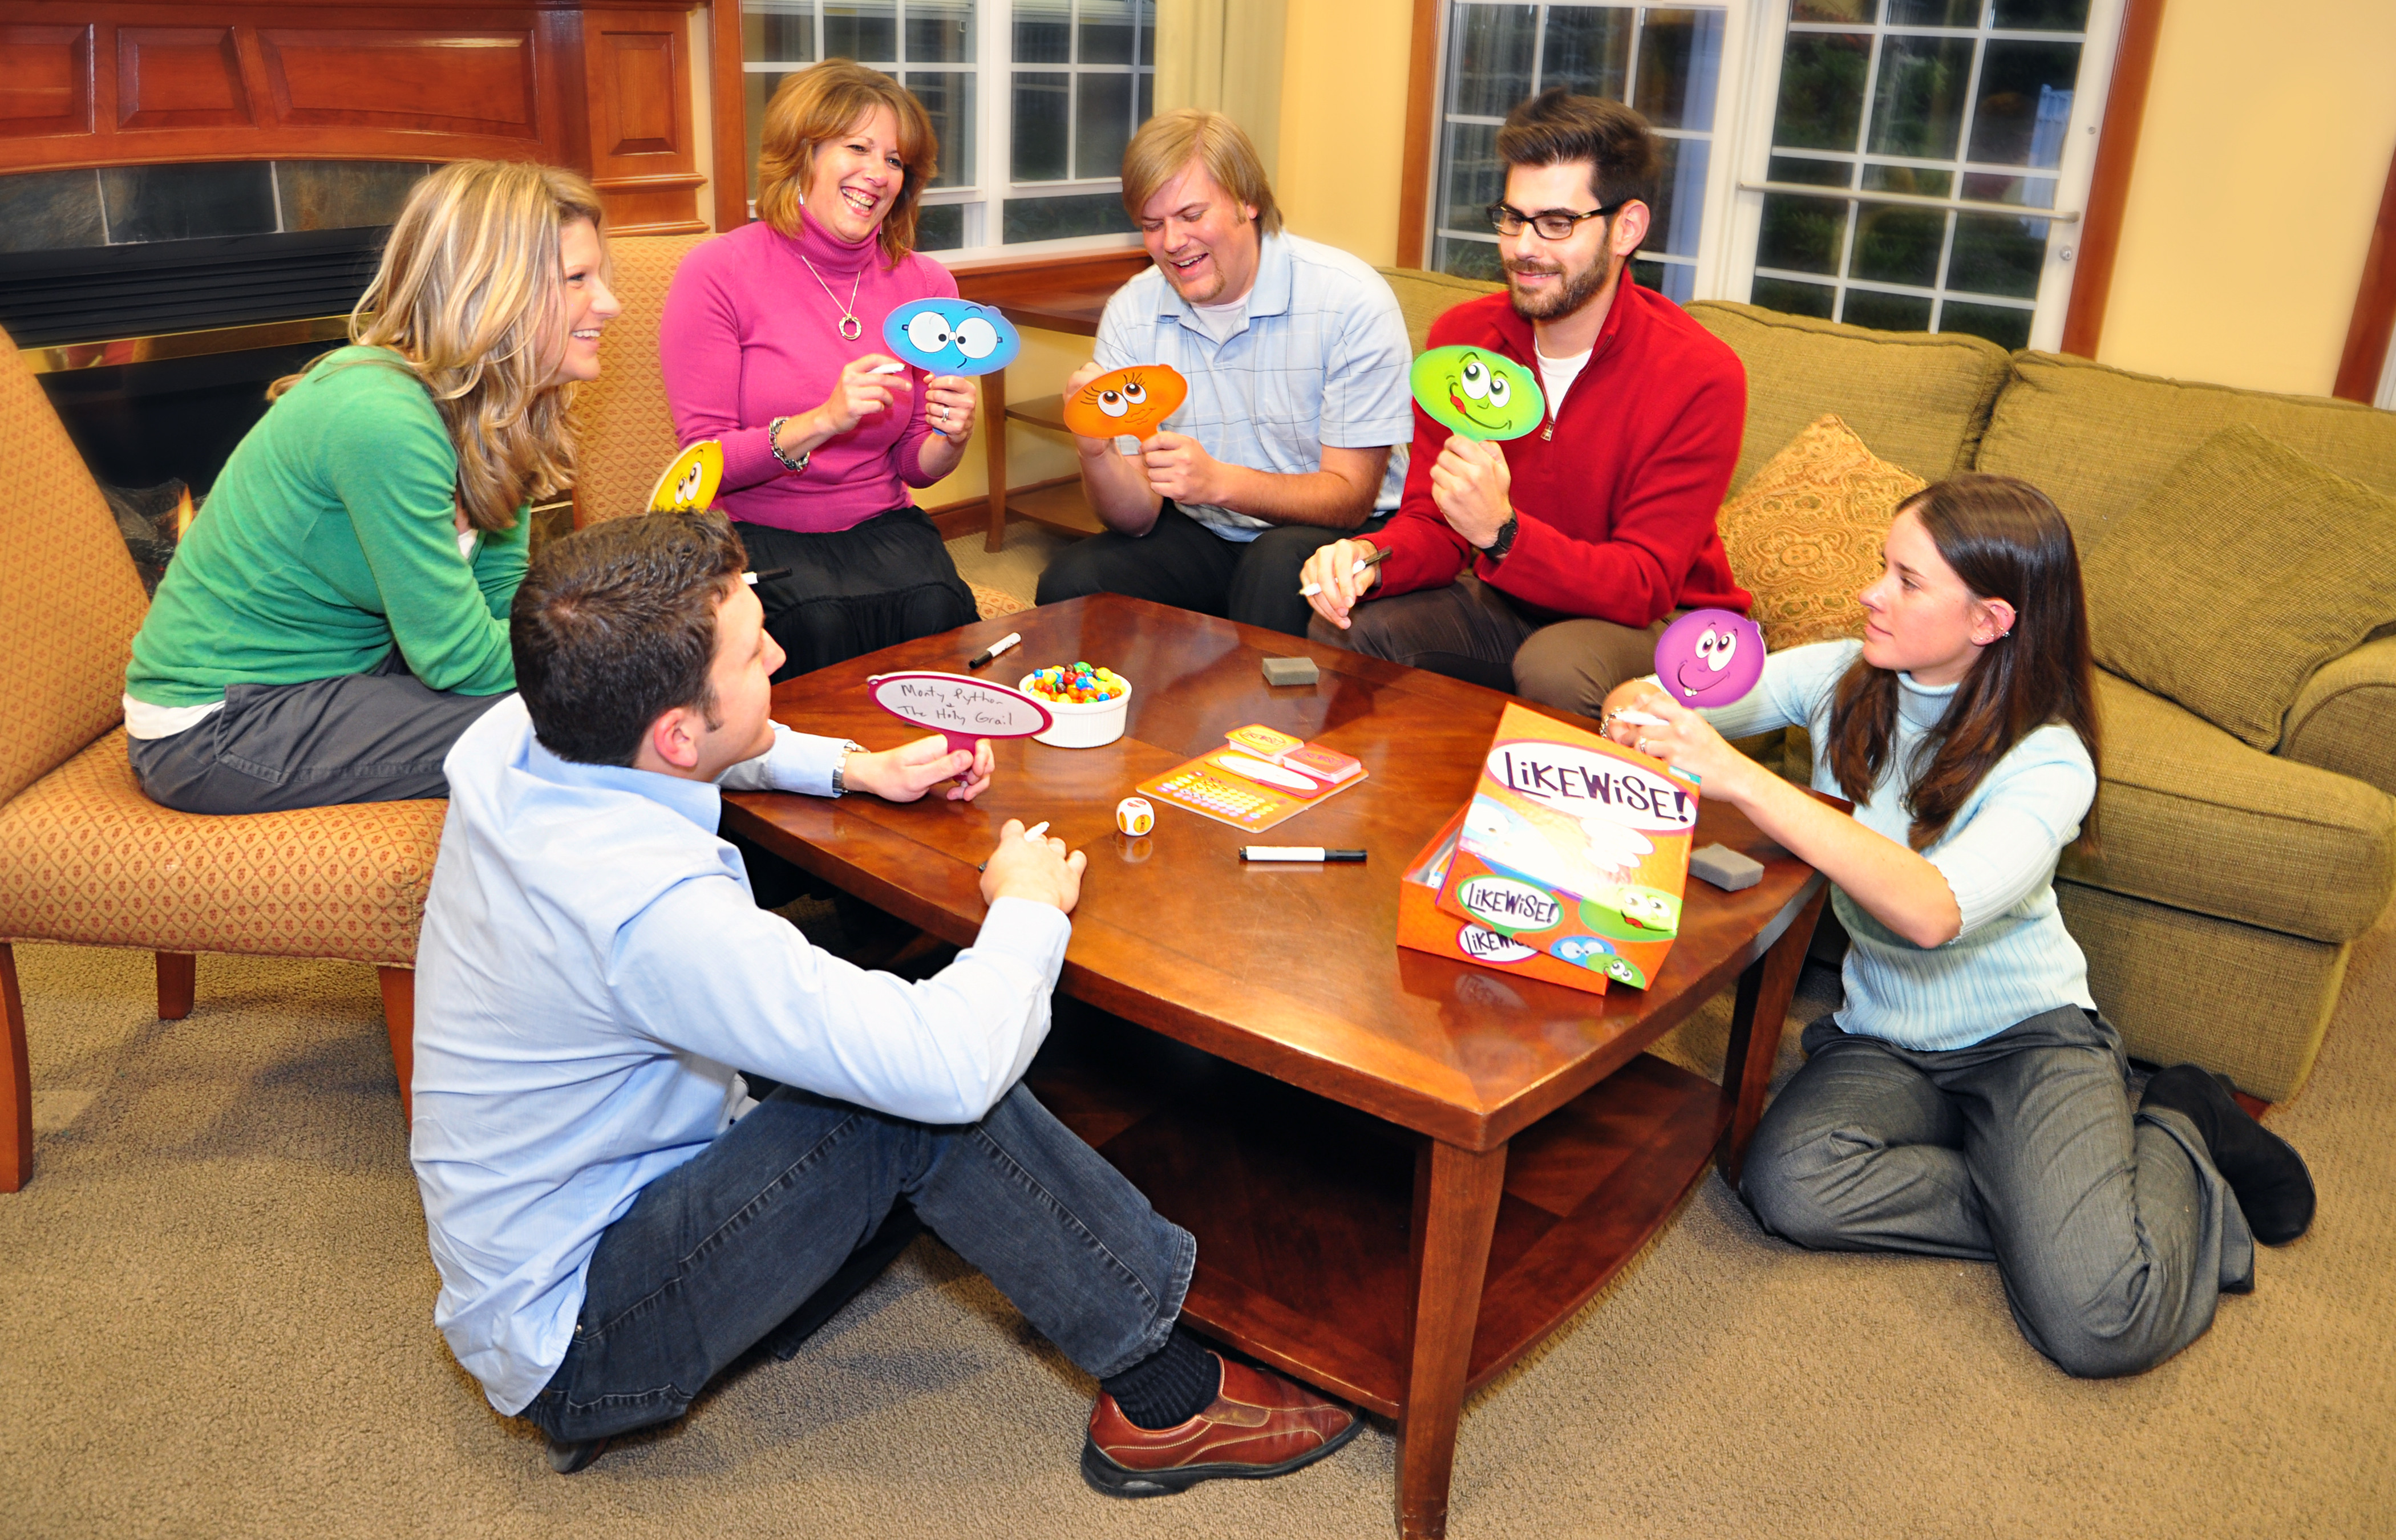 Inspirational 10 Things Every High School Student Should Do This Year Board Games to Play with Family Of Incredible 45 Ideas Board Games to Play with Family